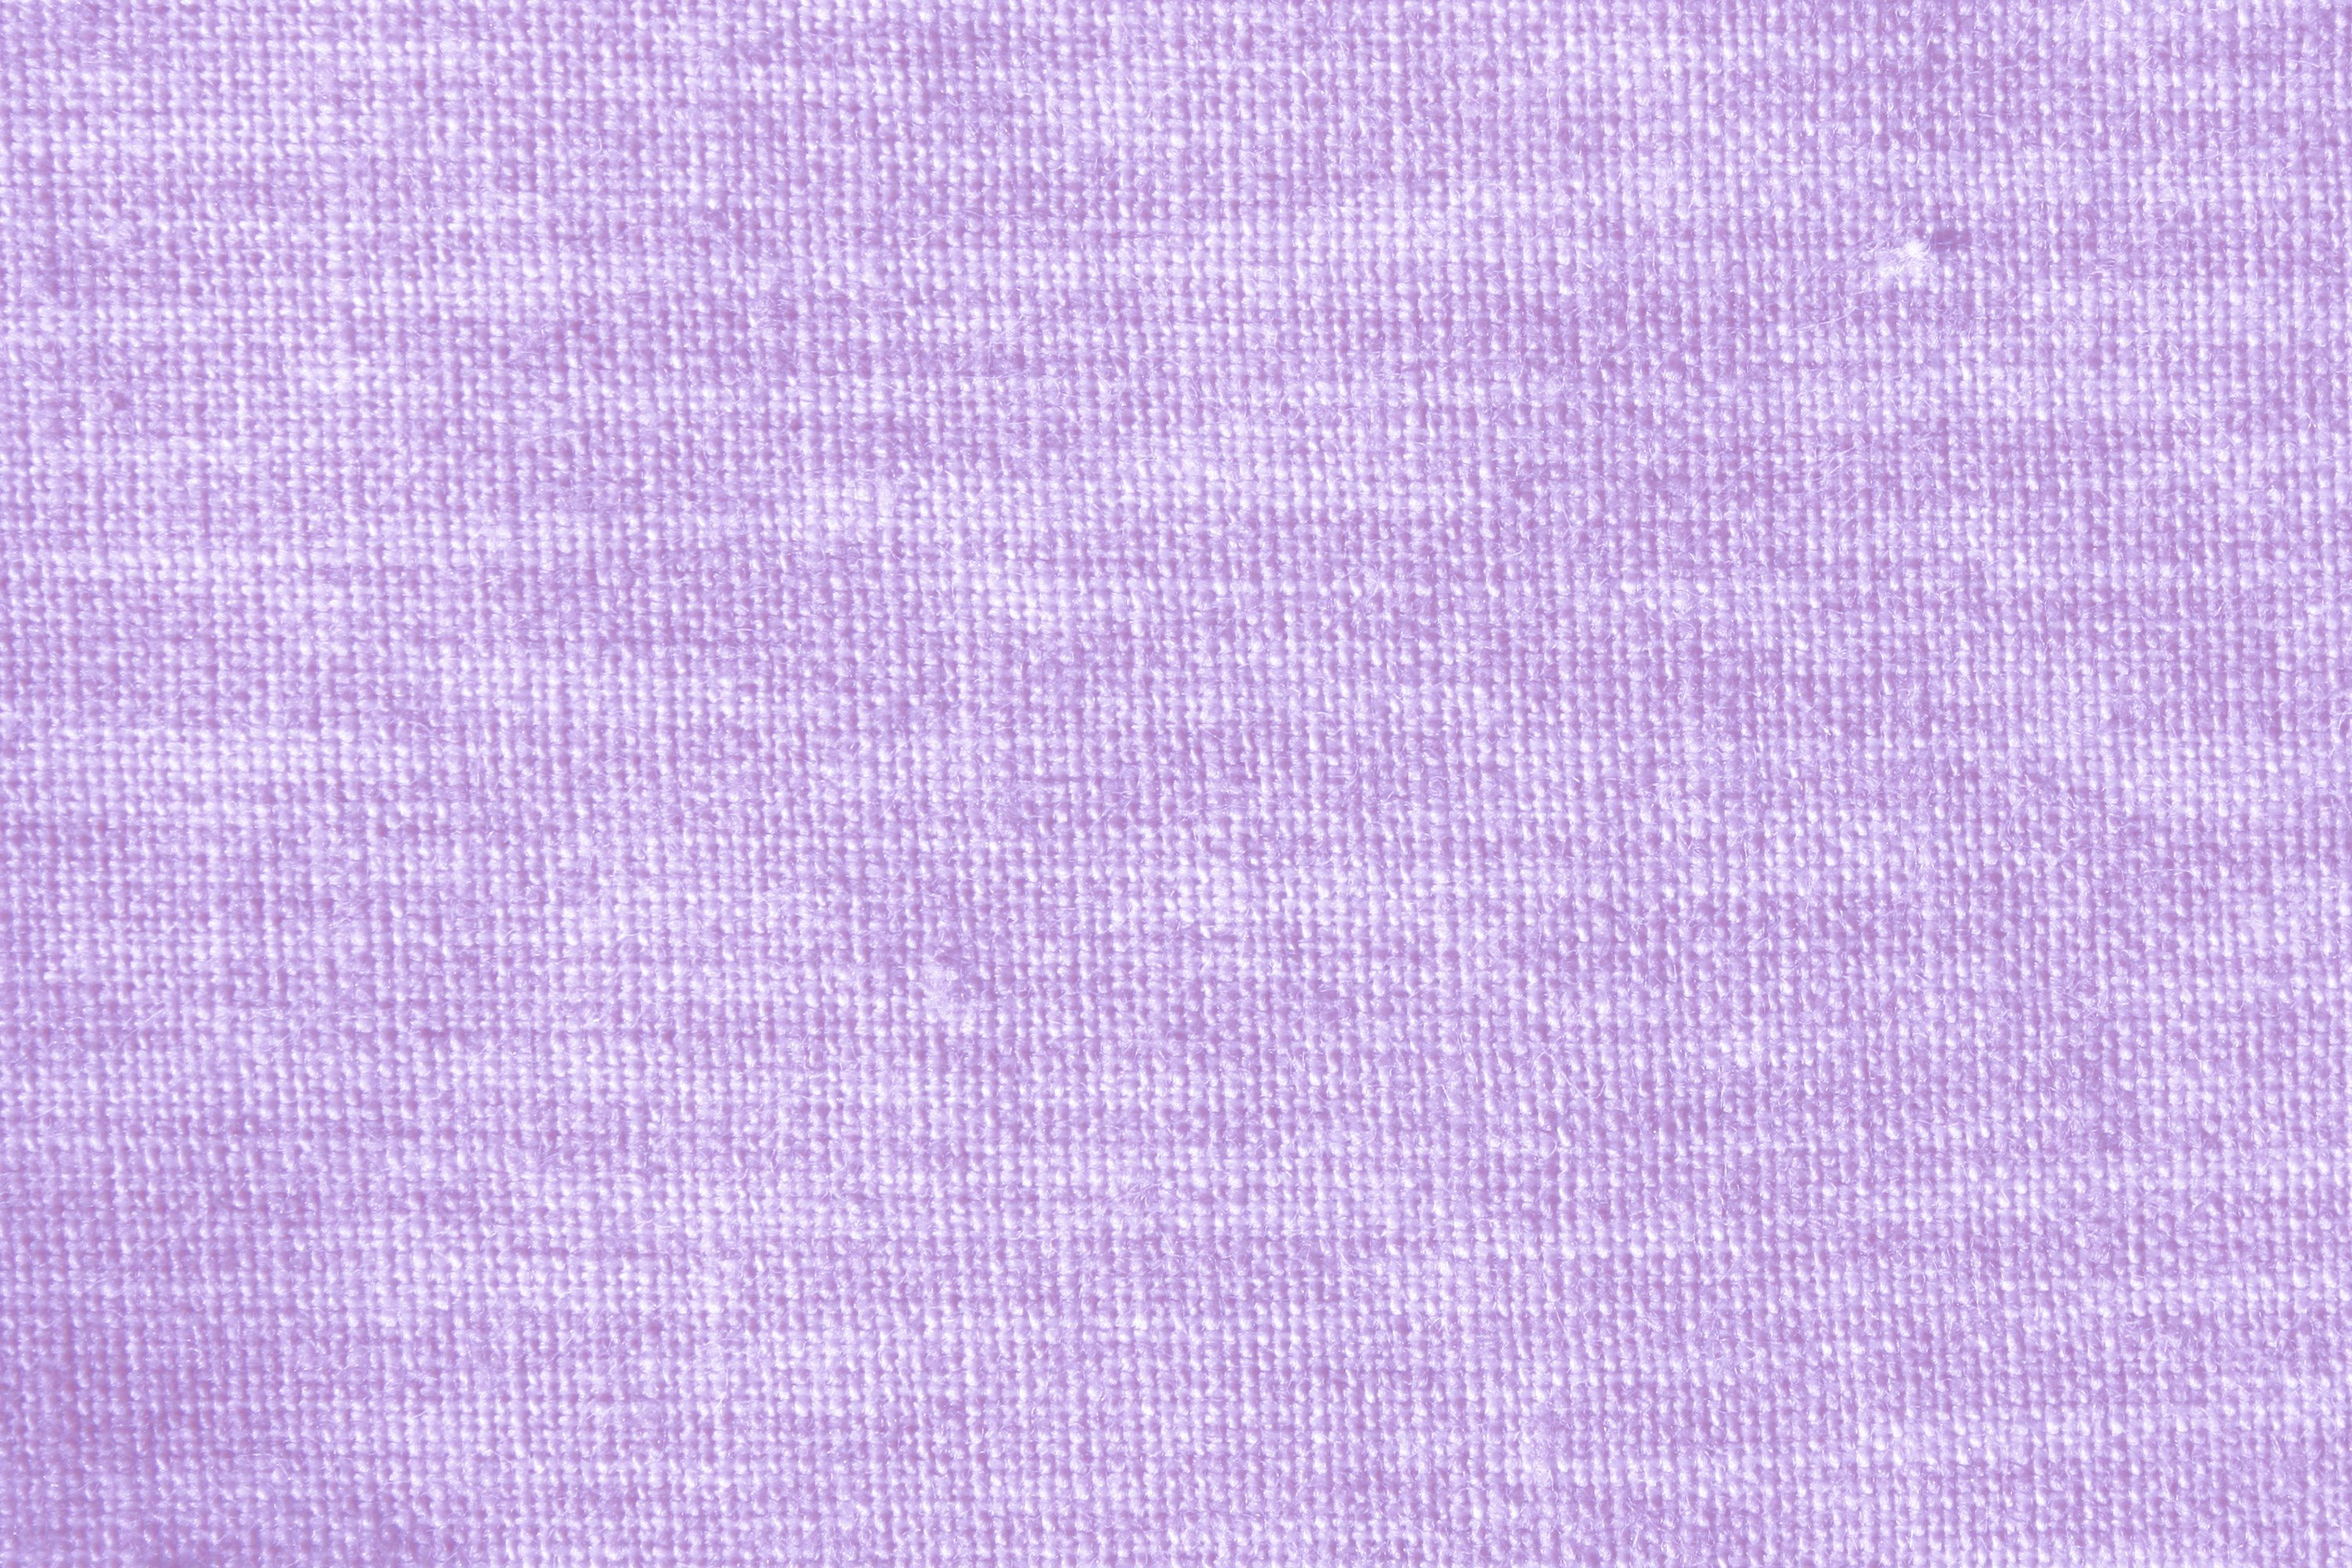 Light purple backgrounds wallpapersafari for Pastel galaxy fabric